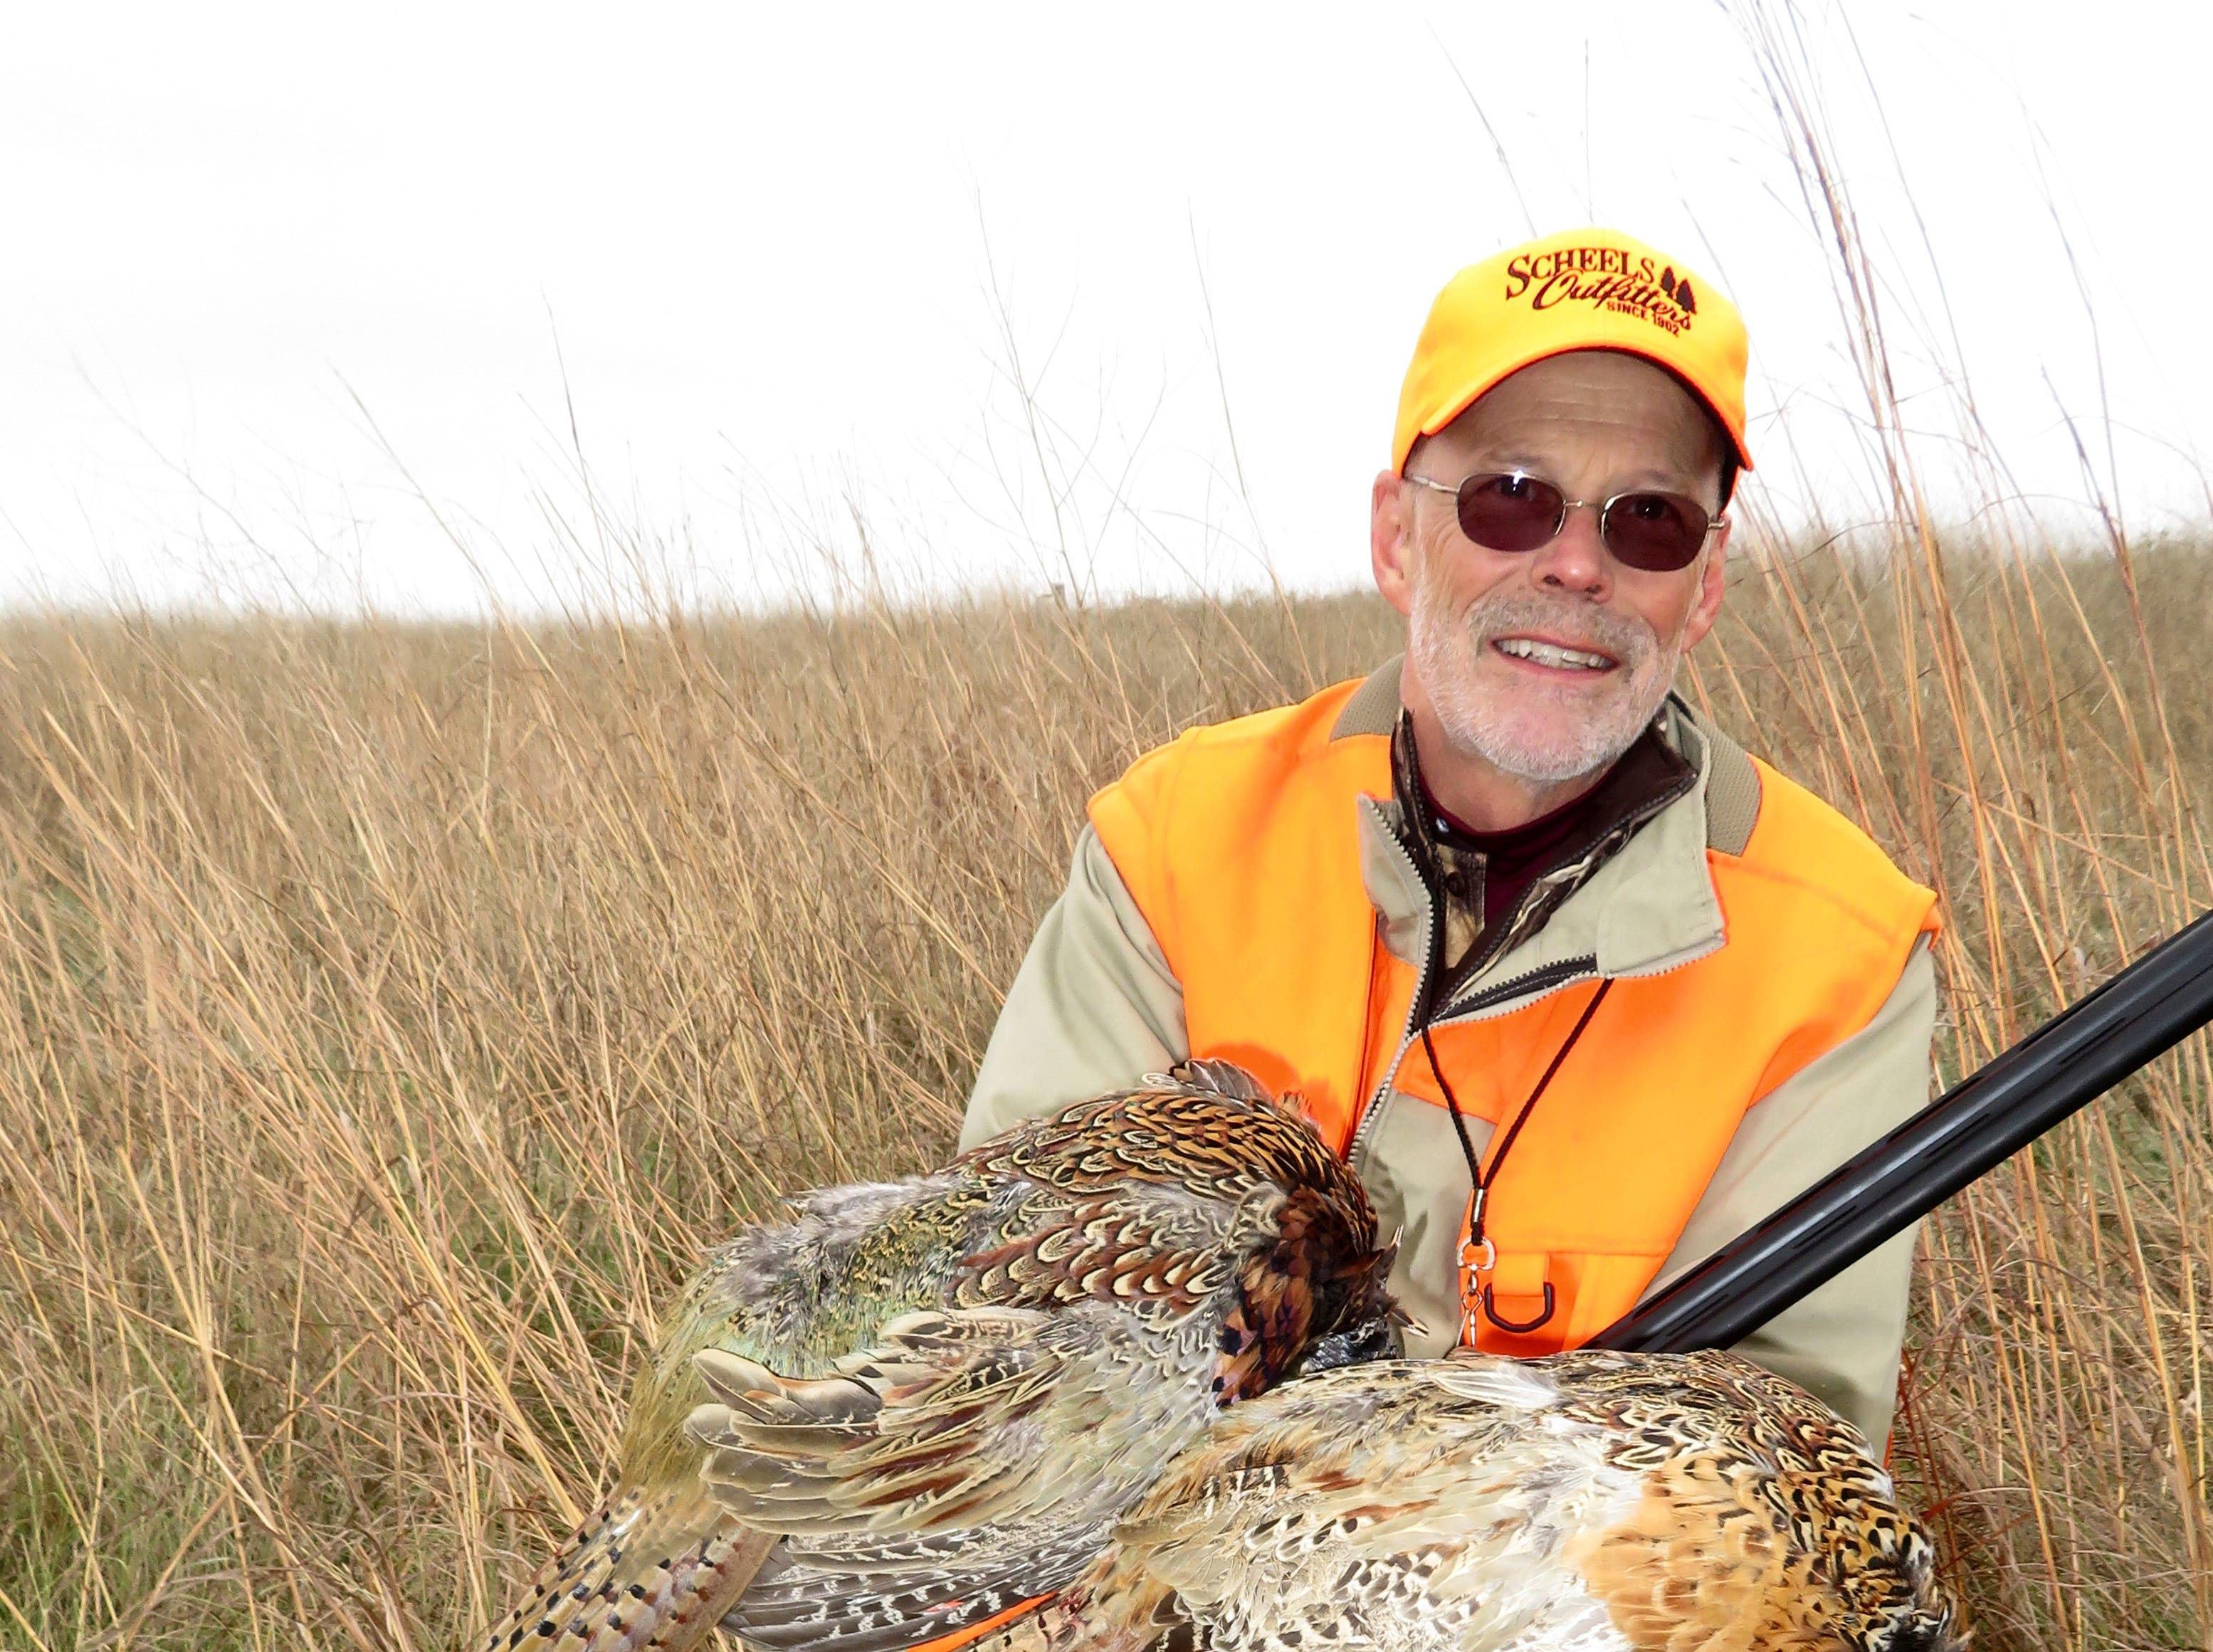 State pheasant count gives hope for successful hunting season